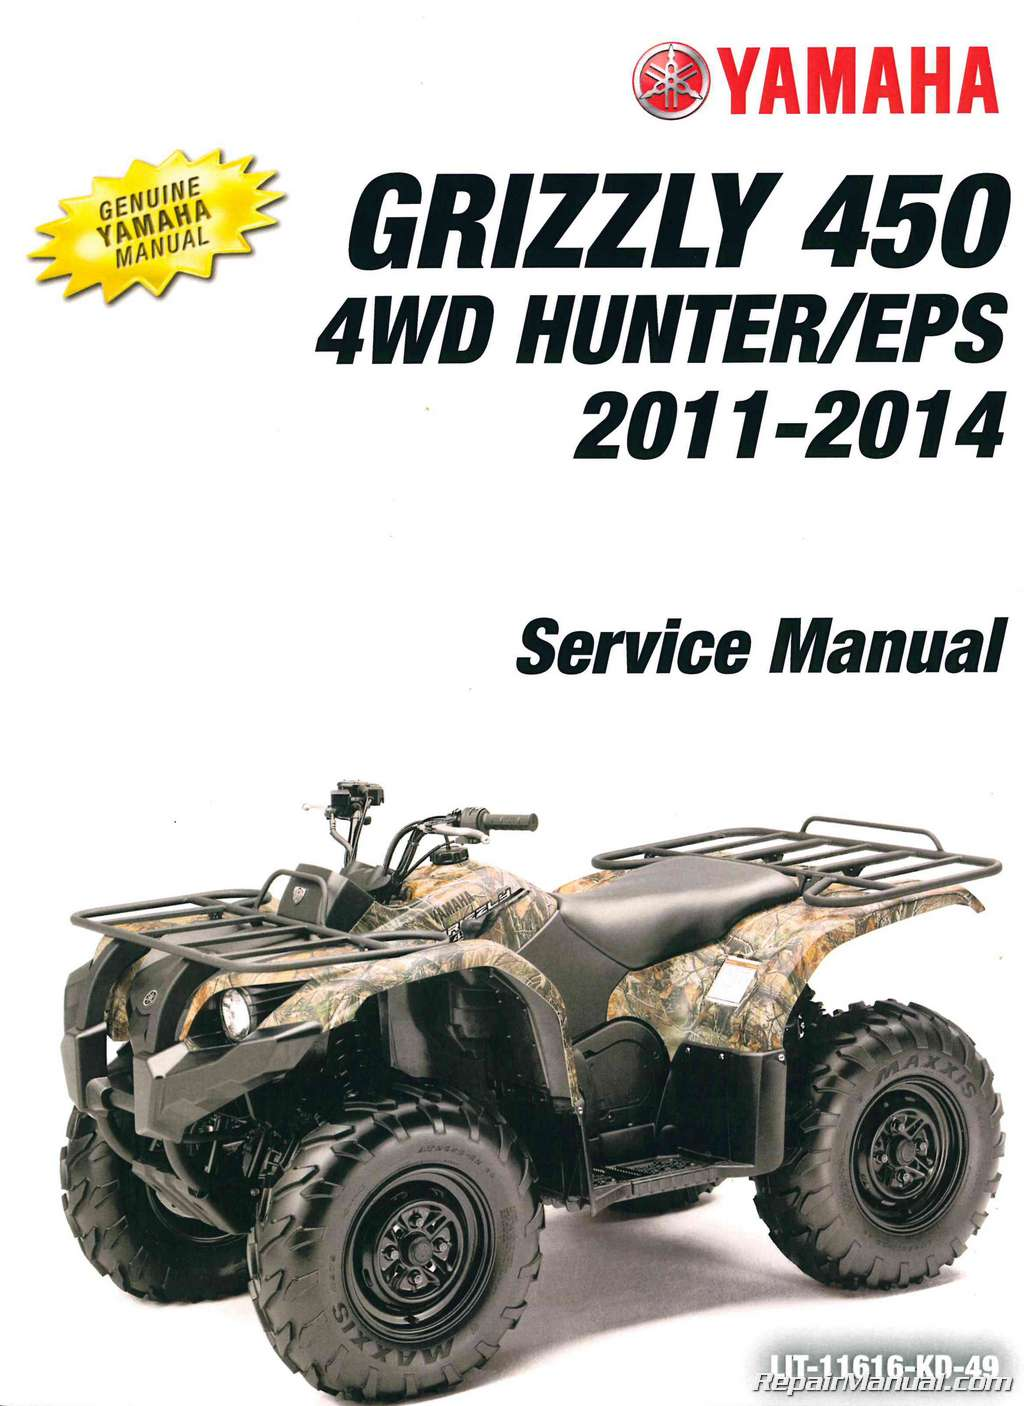 2012 Yamaha Grizzly 450 Wiring Diagram - Wiring Diagram •